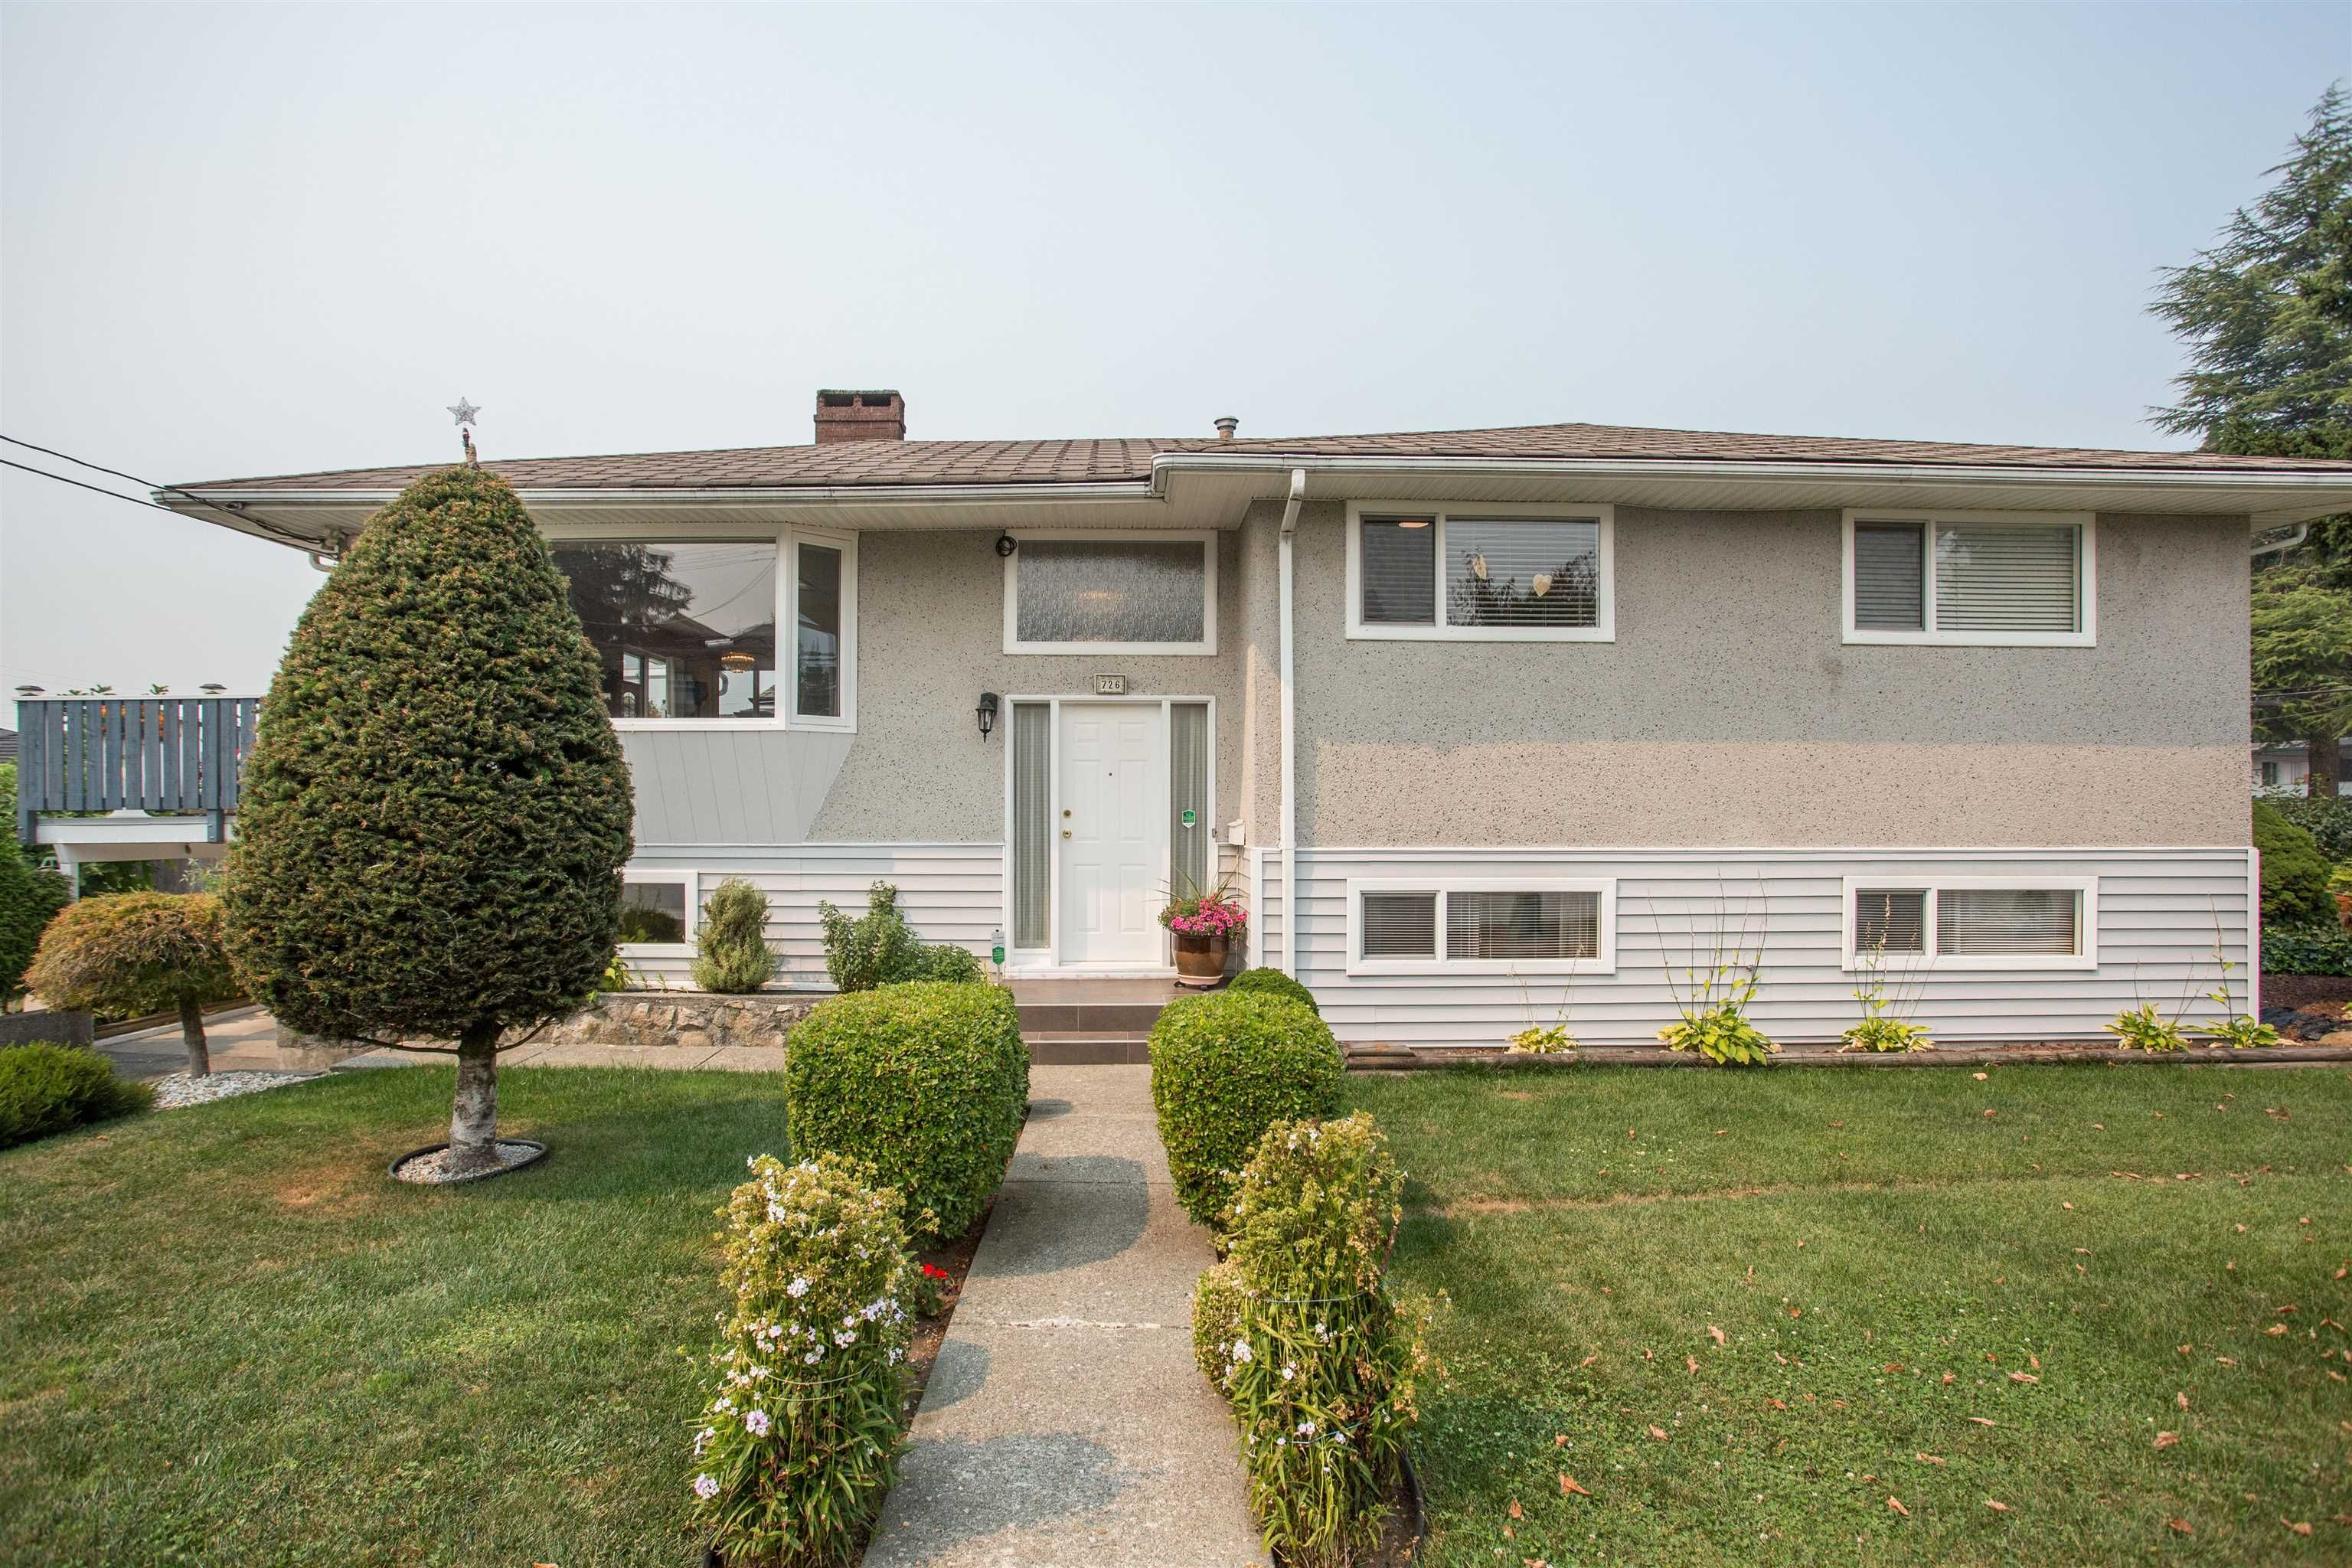 Main Photo: 726 SCHOOLHOUSE Street in Coquitlam: Central Coquitlam House for sale : MLS®# R2609829